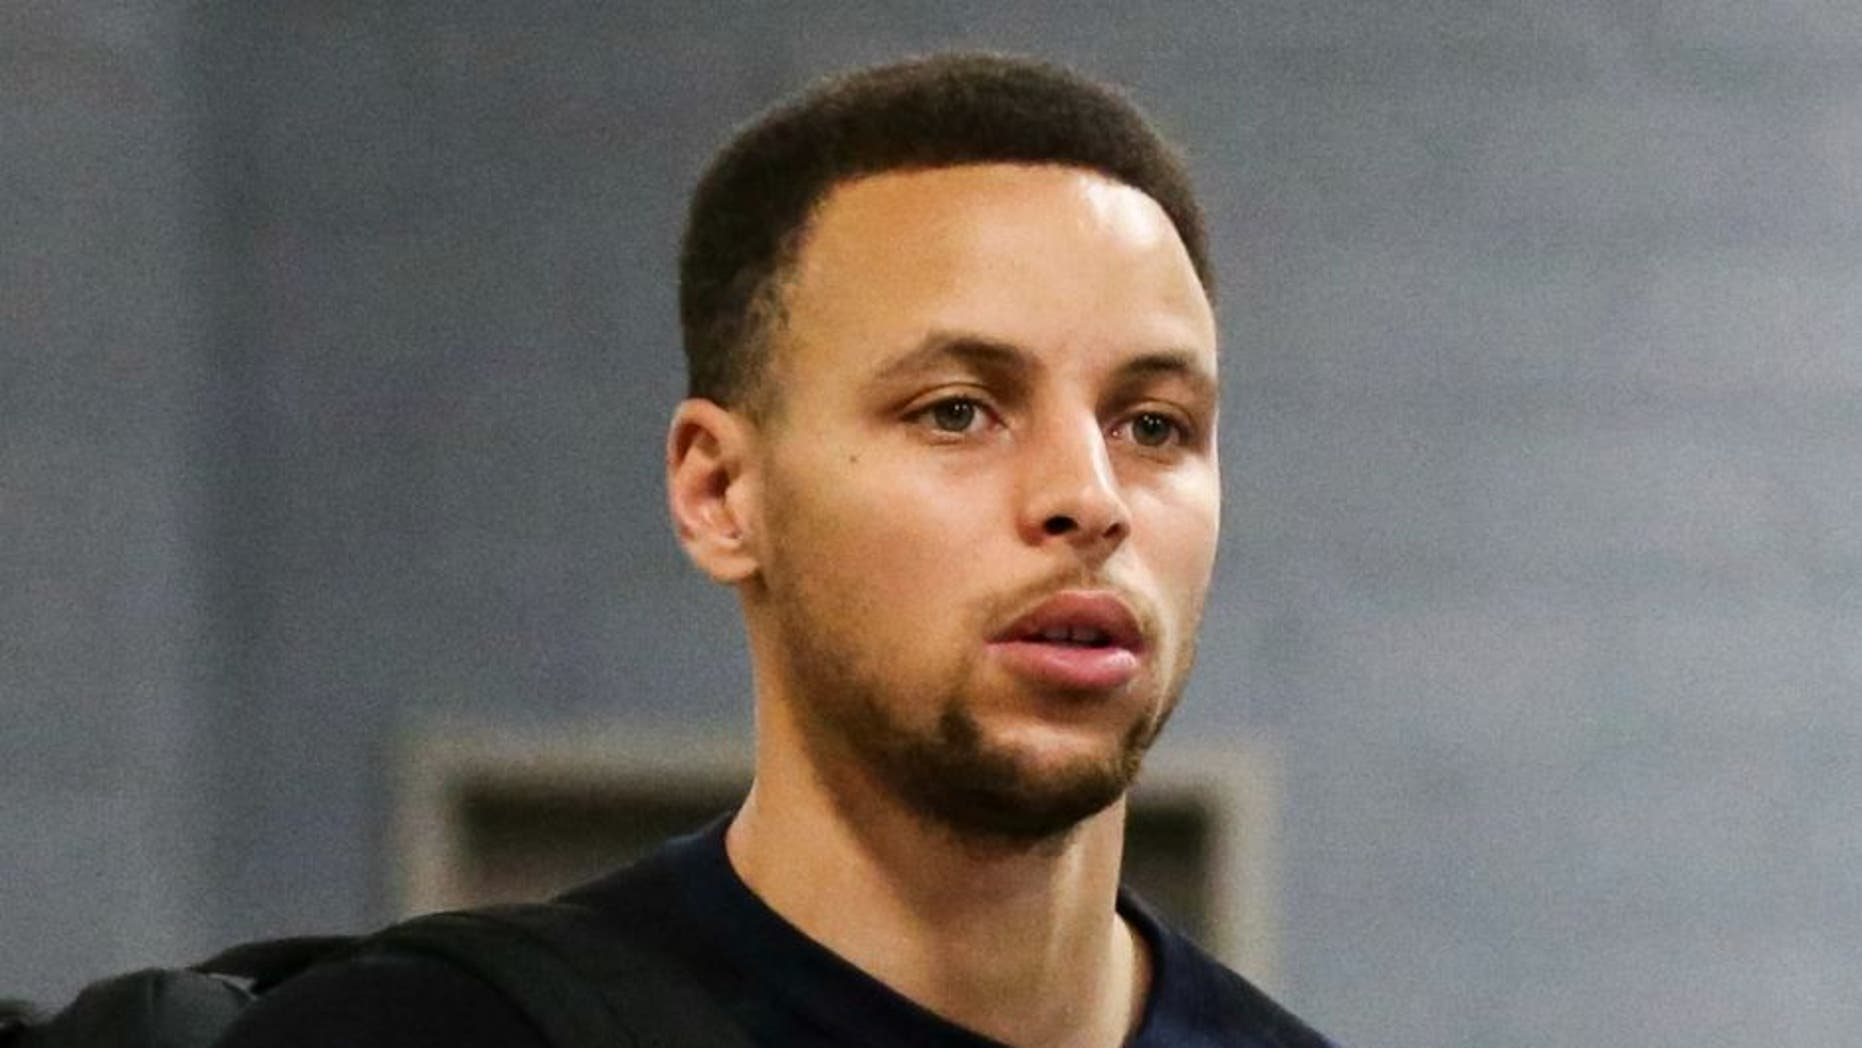 Apr 21, 2016; Houston, TX, USA; Golden State Warriors guard Stephen Curry (30) arrives before game three of the first round of the NBA Playoffs against the Houston Rockets at Toyota Center. Mandatory Credit: Troy Taormina-USA TODAY Sports